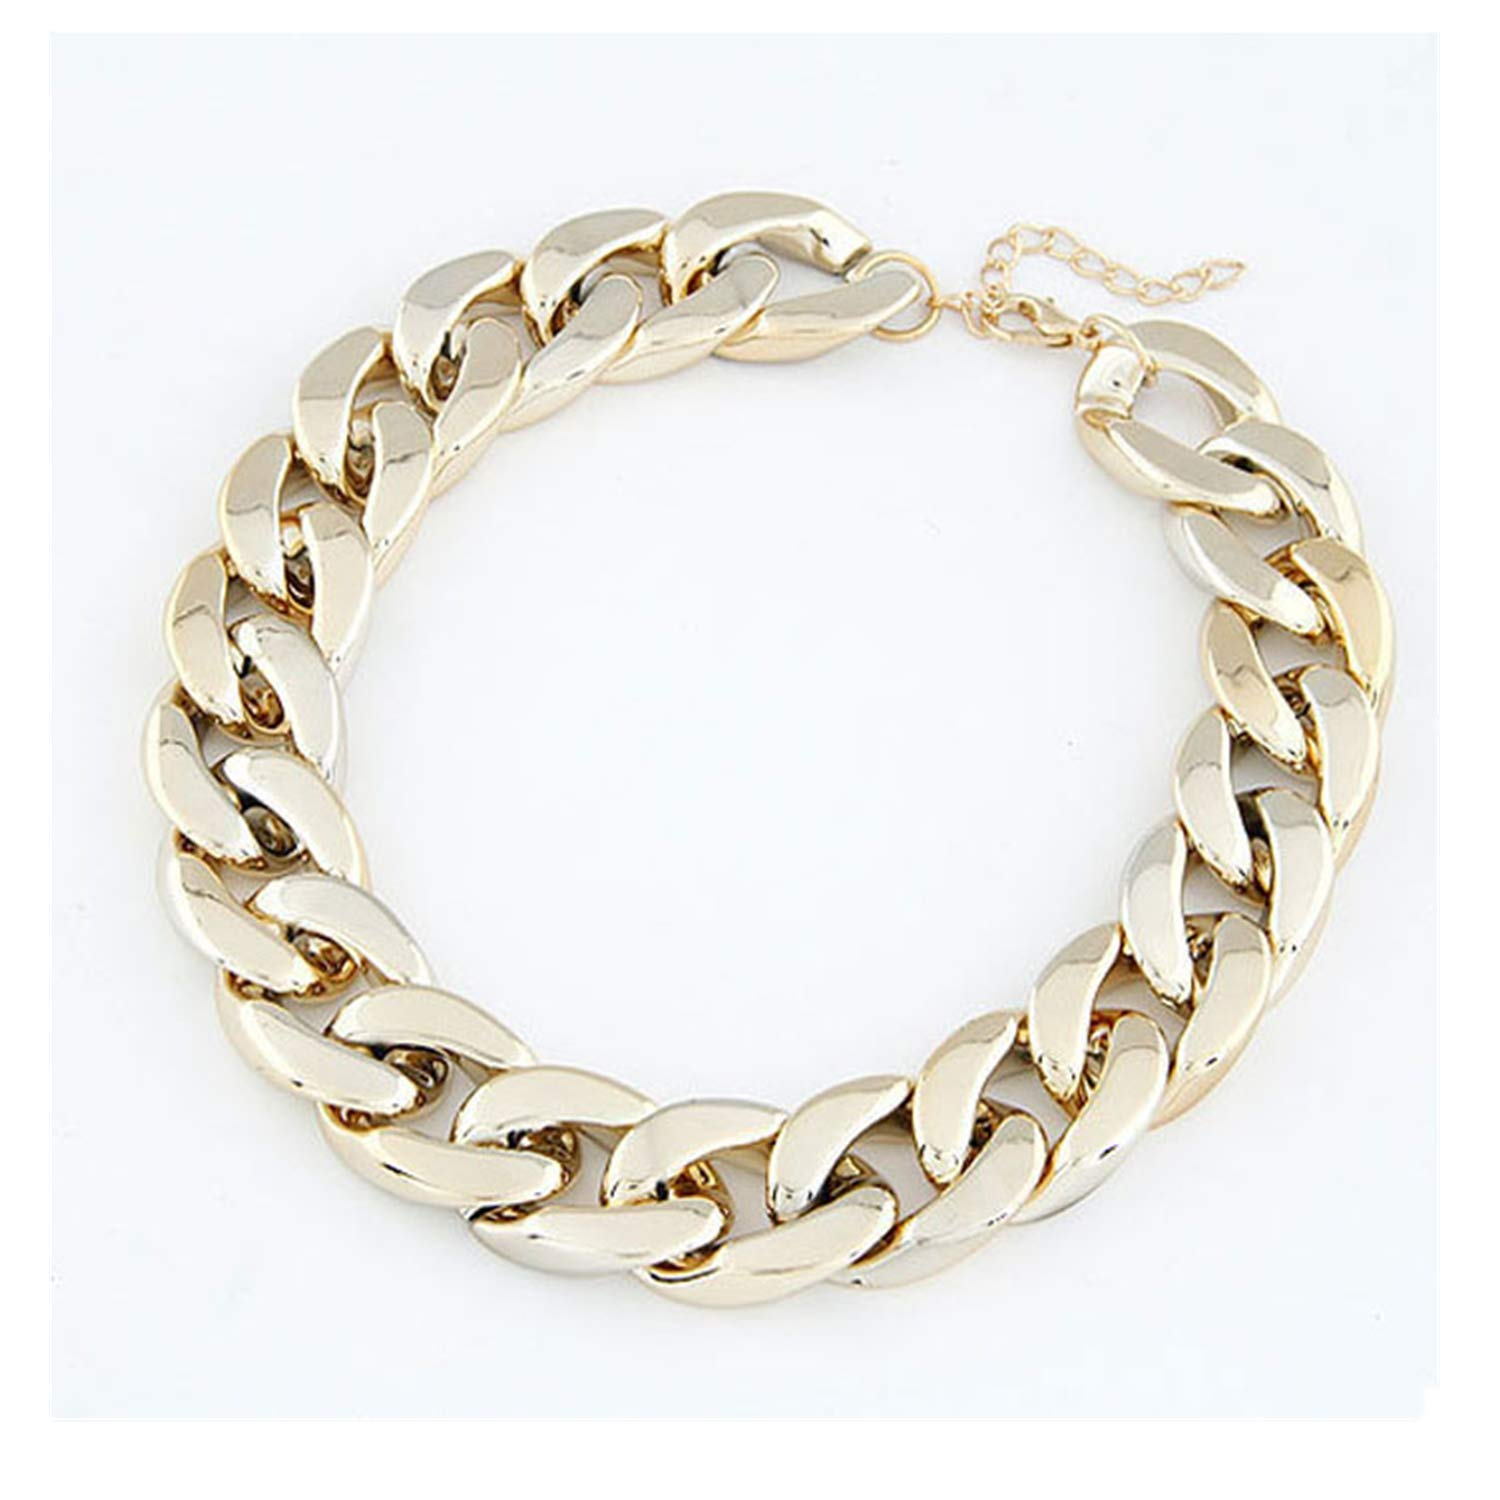 HUAMING Unisex Wild Thick Chain Choker Necklace Chain Hip Hop Gold Necklace Shiny Celebrity Domineering Sexy Style (Gold)